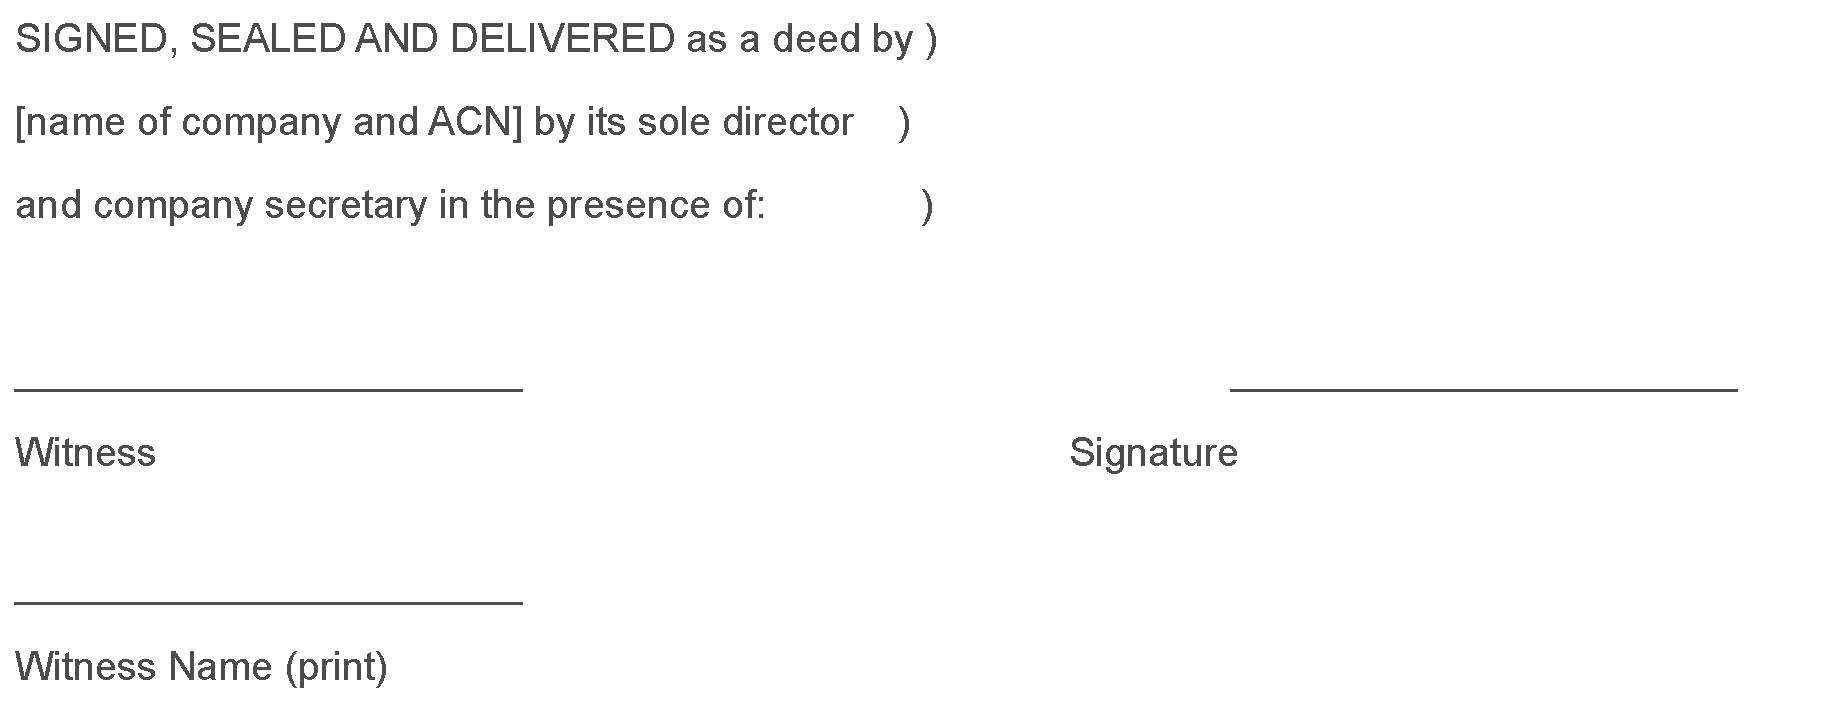 Fact Sheet  Signed Sealed And Delivered   Execution Of Deeds